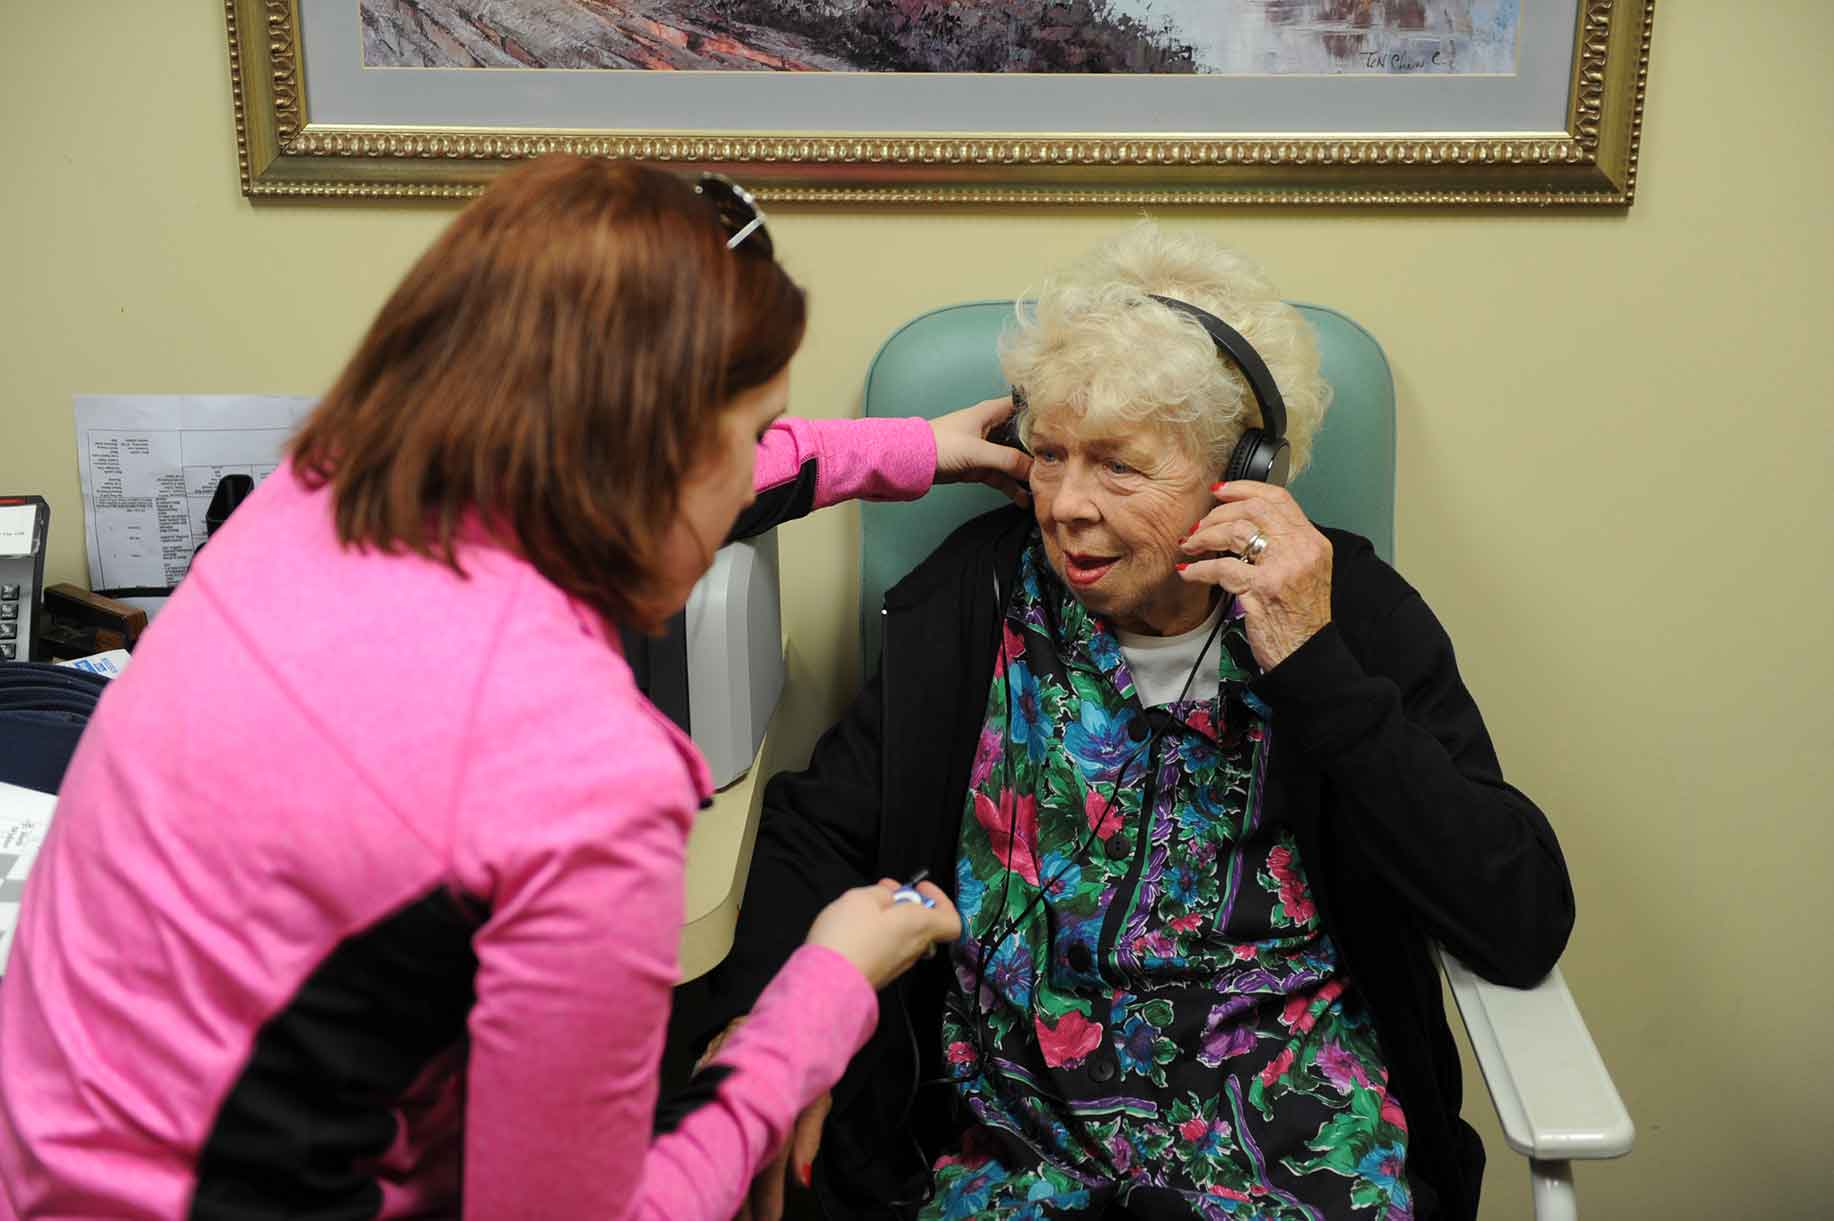 Nurse Assisting Woman with Headphones